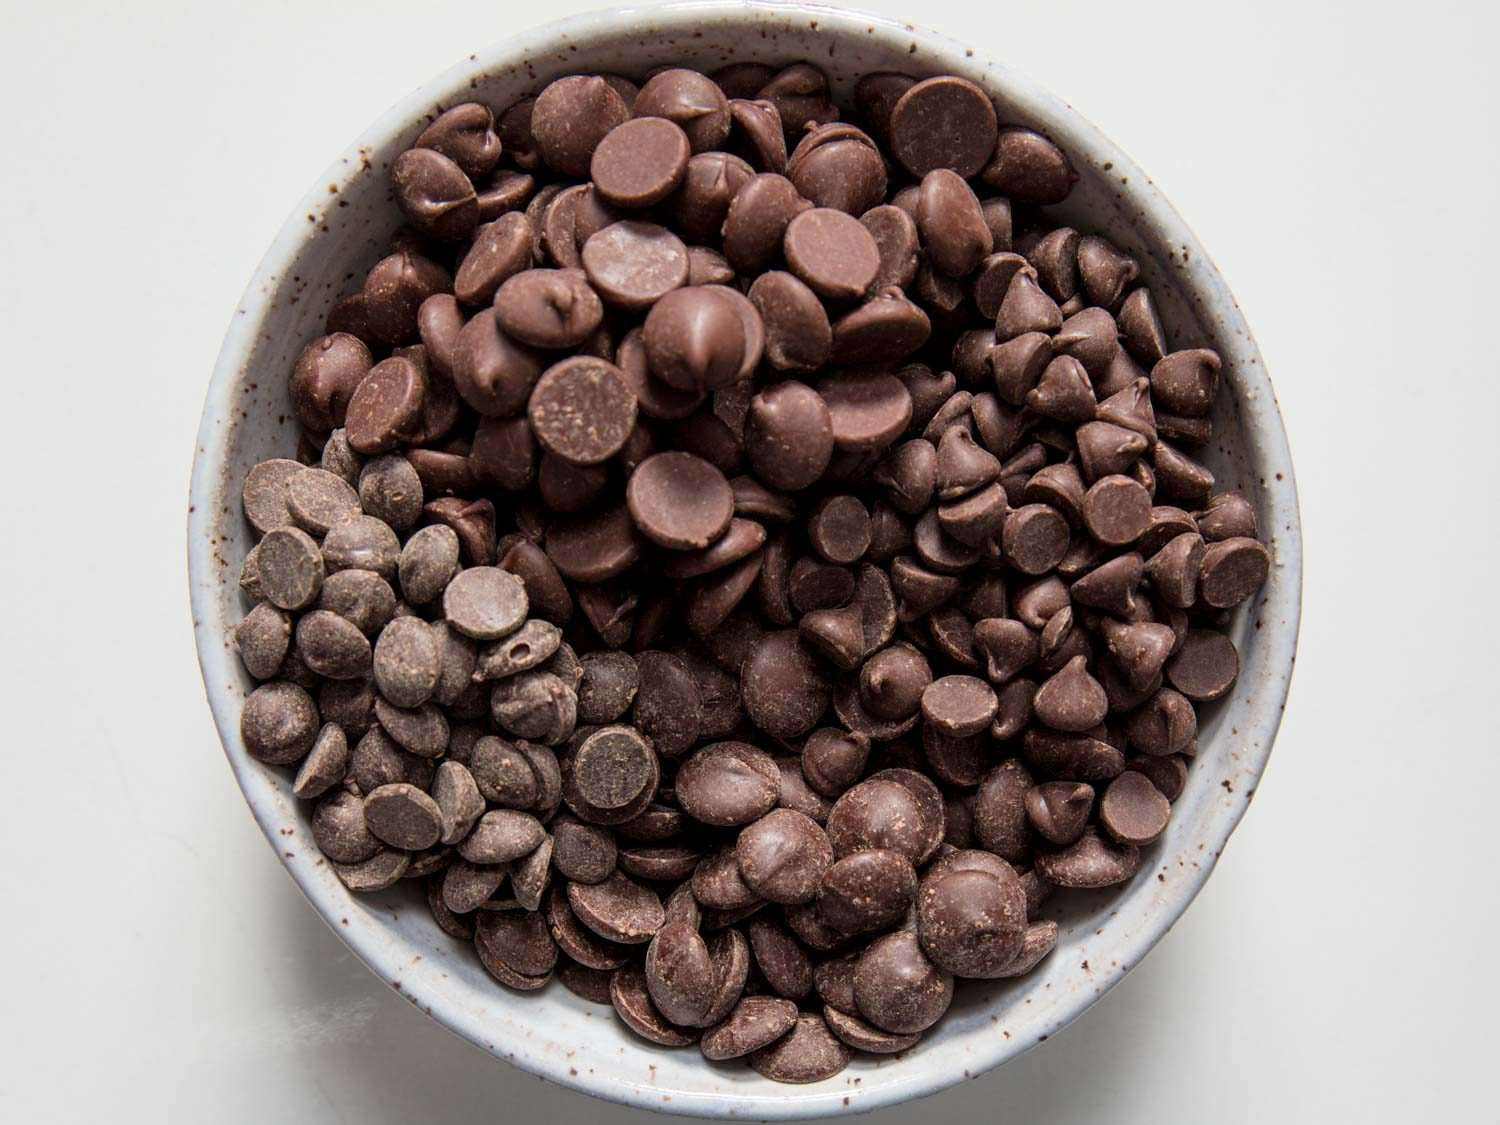 a blend of chocolate chips